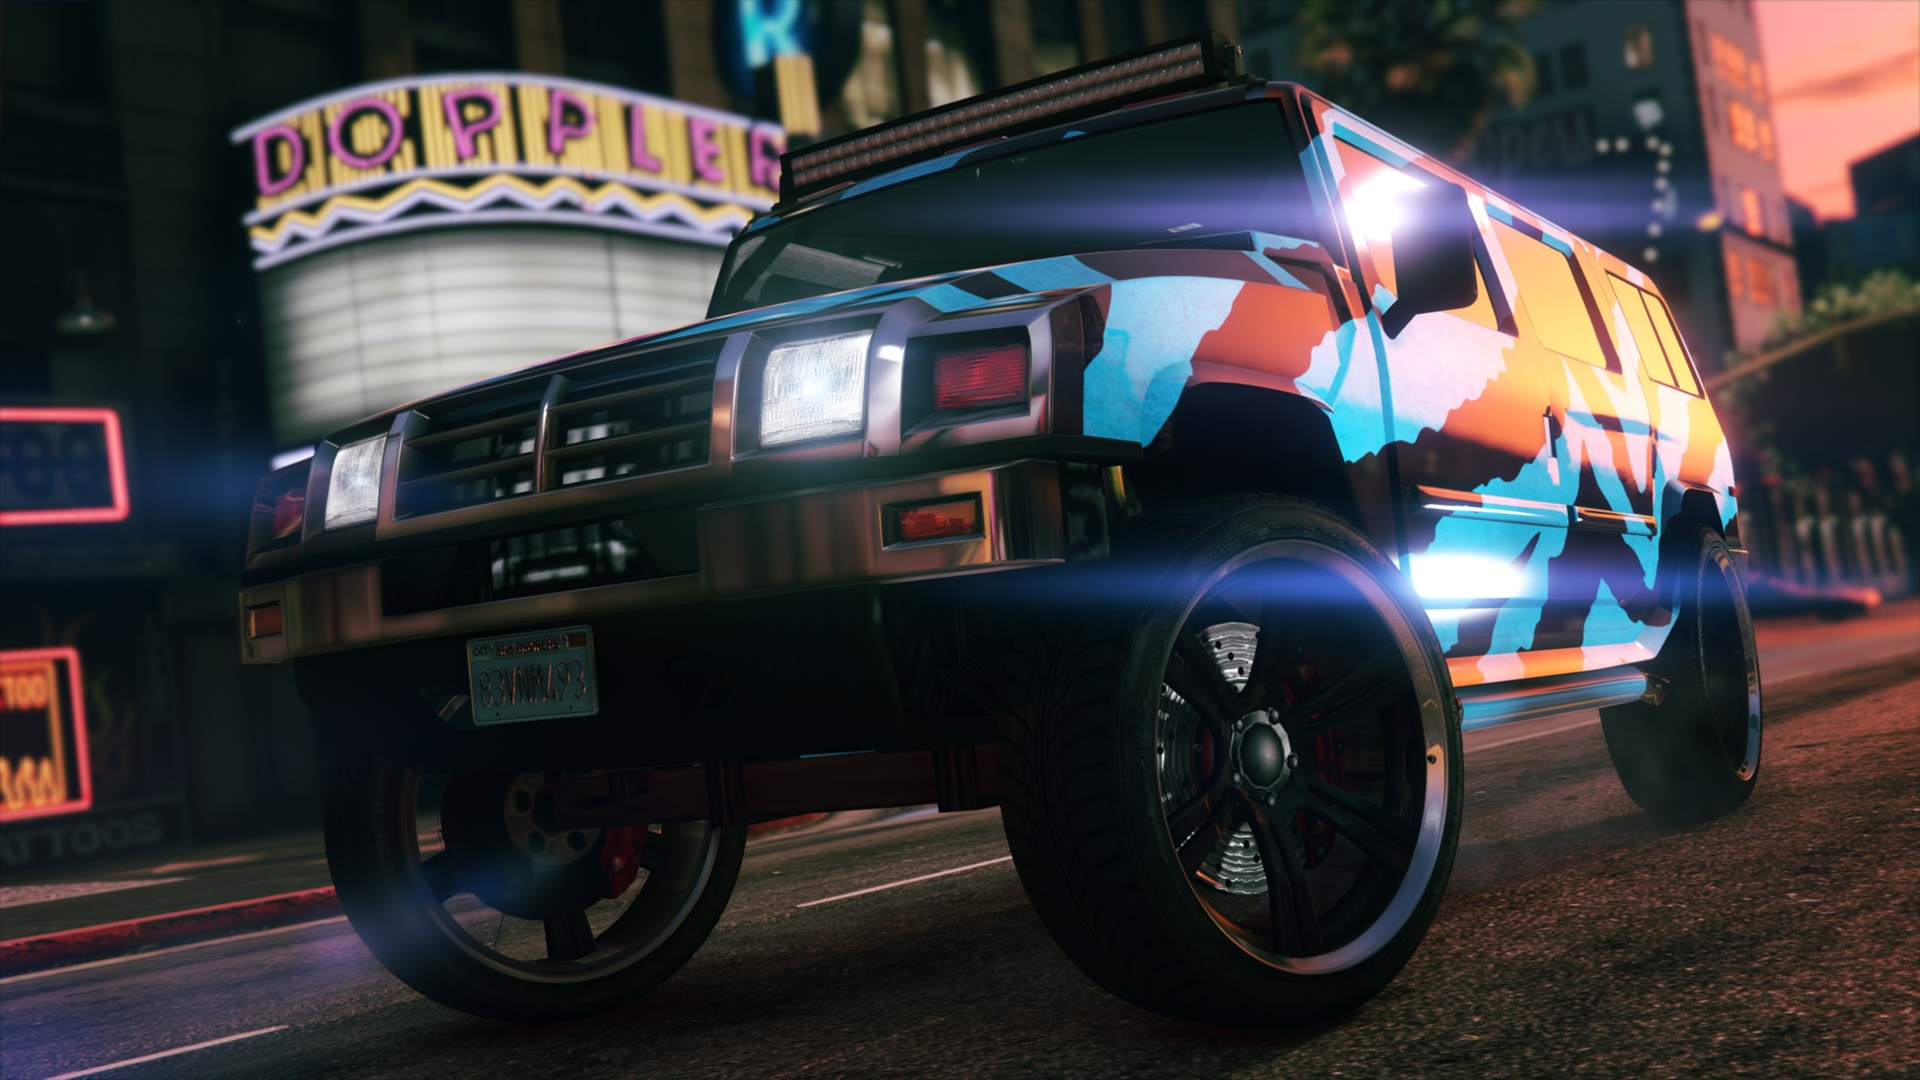 Now at Southern San Andreas Super Autos: Mammoth Patriot and Chariot